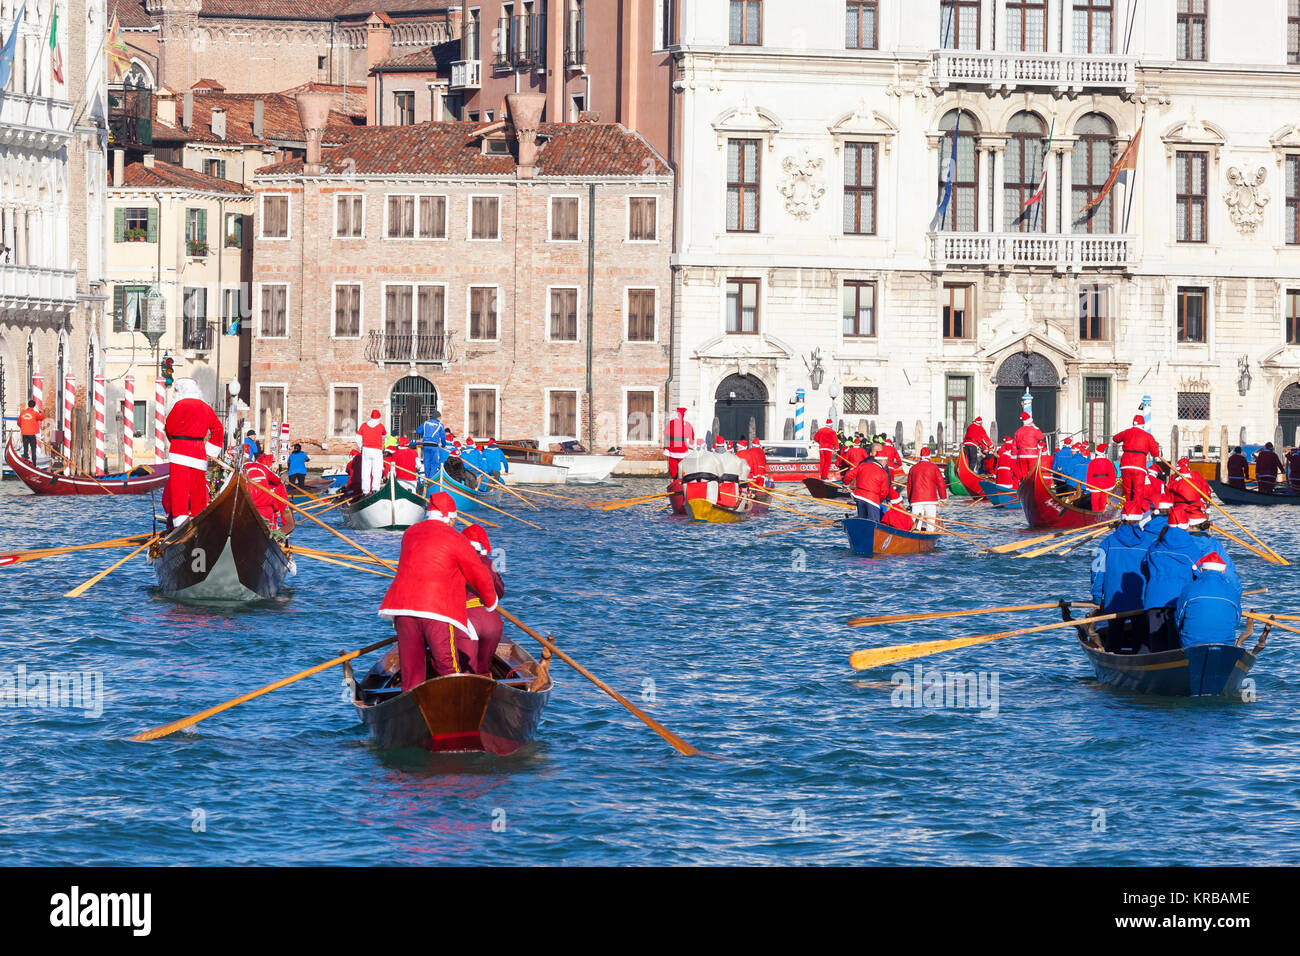 Babbo Natale Italy.Celebrating Christmas In Venice Italy During The Babbo Natale Stock